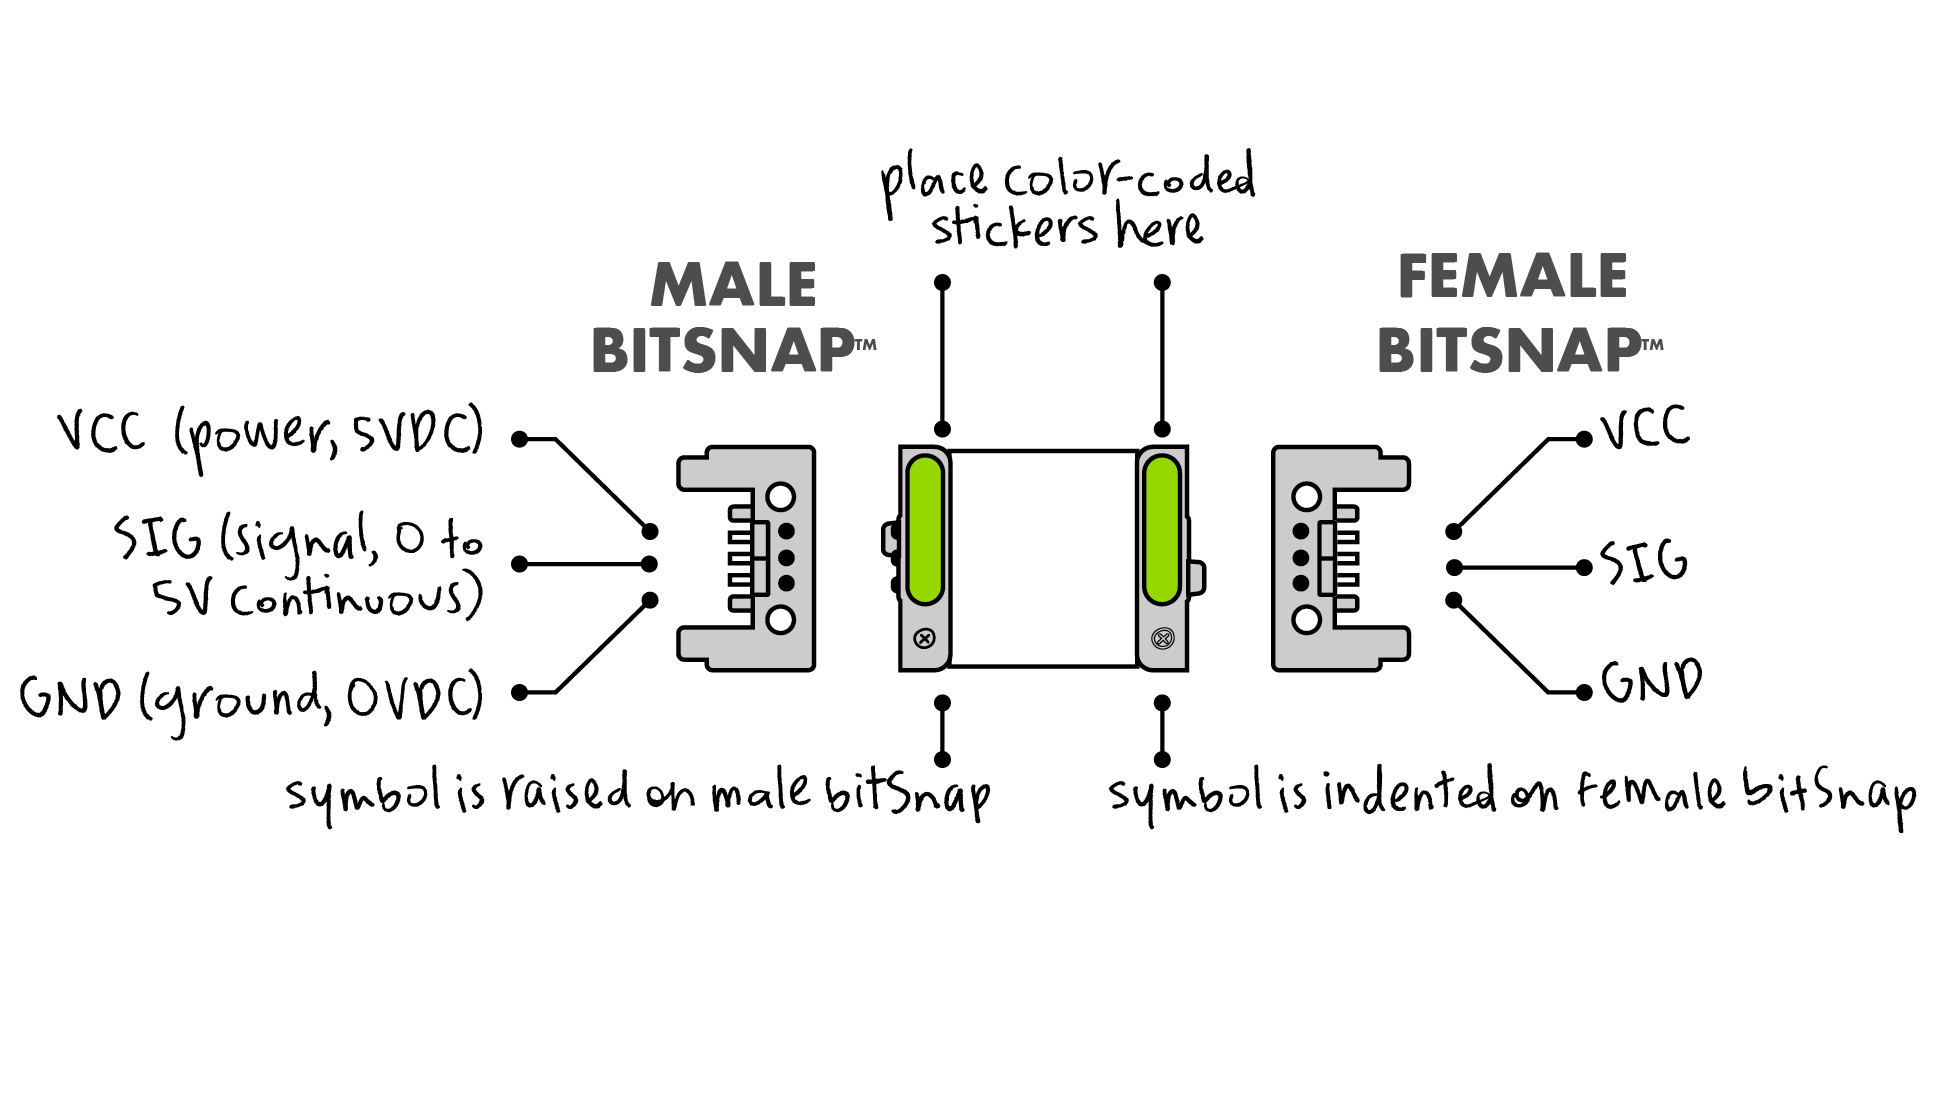 width=500 height=281 /></p> <p><span>bitSnaps allow you to snap Bits together with ease and prevent you from connecting Bits the wrong way. Included in this package are 12 gray bitSnaps (6 female and 6 male connectors) and corresponding blue  pink  orange  and green stickers to identify whether your new Bit is a power  input  wire  or output.</span></p> <p><span style=font-size: 1em;><span>• </span>USERS : Ages 8+</span><br /><span style=font-size: 1em;><span>• </span>SIZES : Height 2.54 cm x Width 9.53 cm x Length 19.05 cm</span><br /><span style=font-size: 1em;><span>• </span>WEIGHT : 0.01</span><span style=font-size: 1em;> kg/ </span><span style=font-size: 1em;>0.02lbs</span></p> <p>Product Code & UPC<br /><span>• </span>LB-660-0017-0000A : 810876020589</p> <p><span><br /></span></p> <p><span><br /></span></p> 				  </div> 			  </div> 			  <div role=